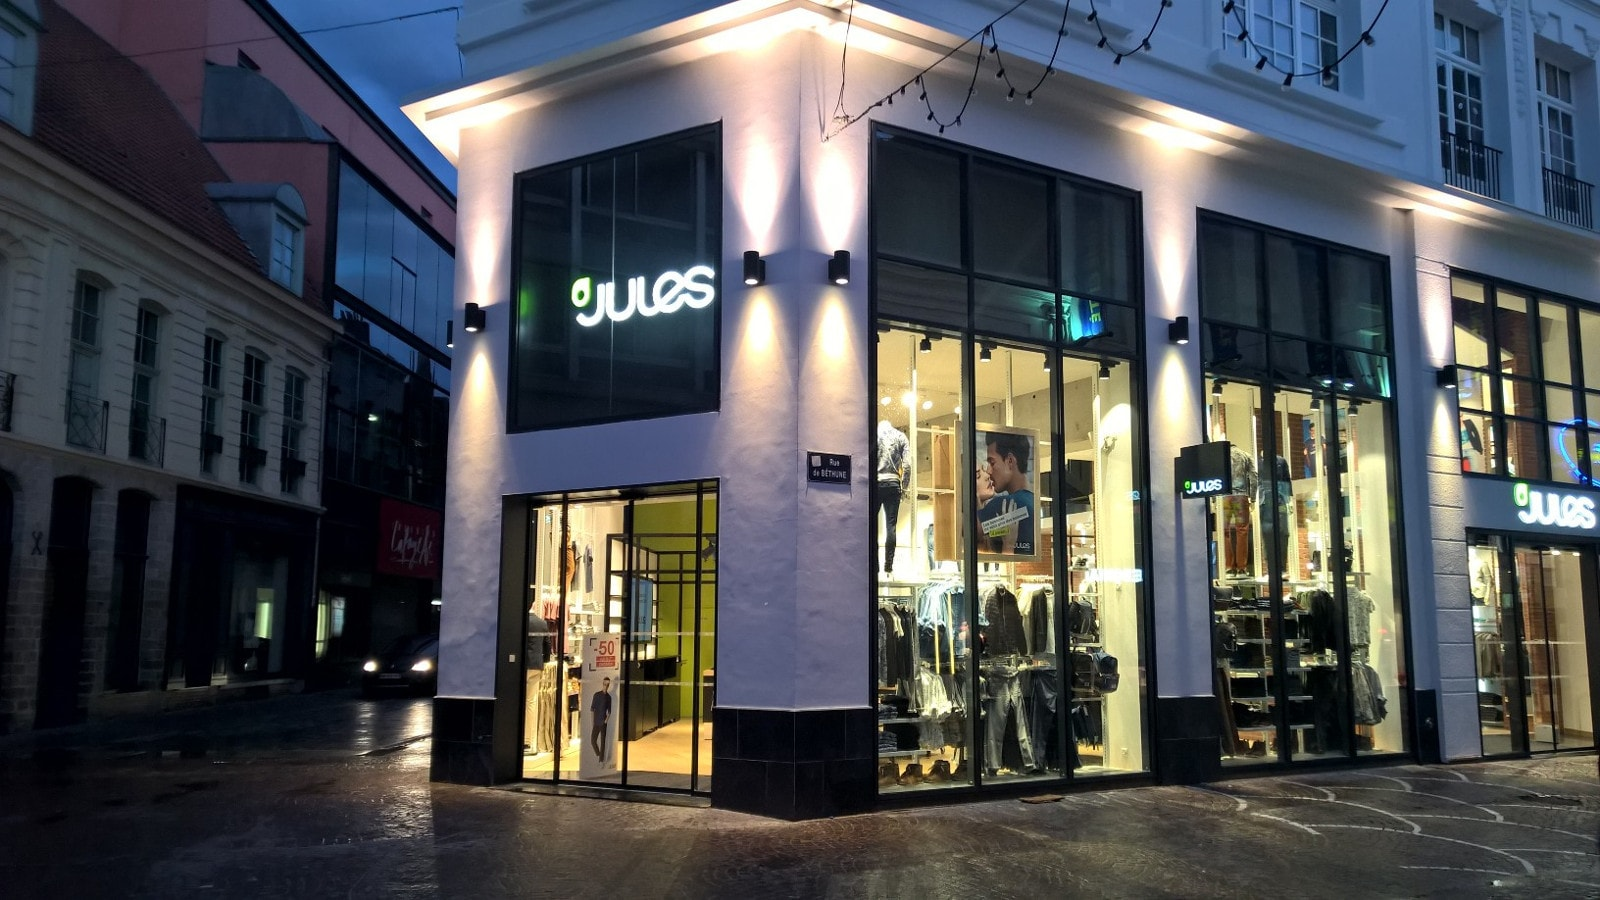 Magasin Jules Lille